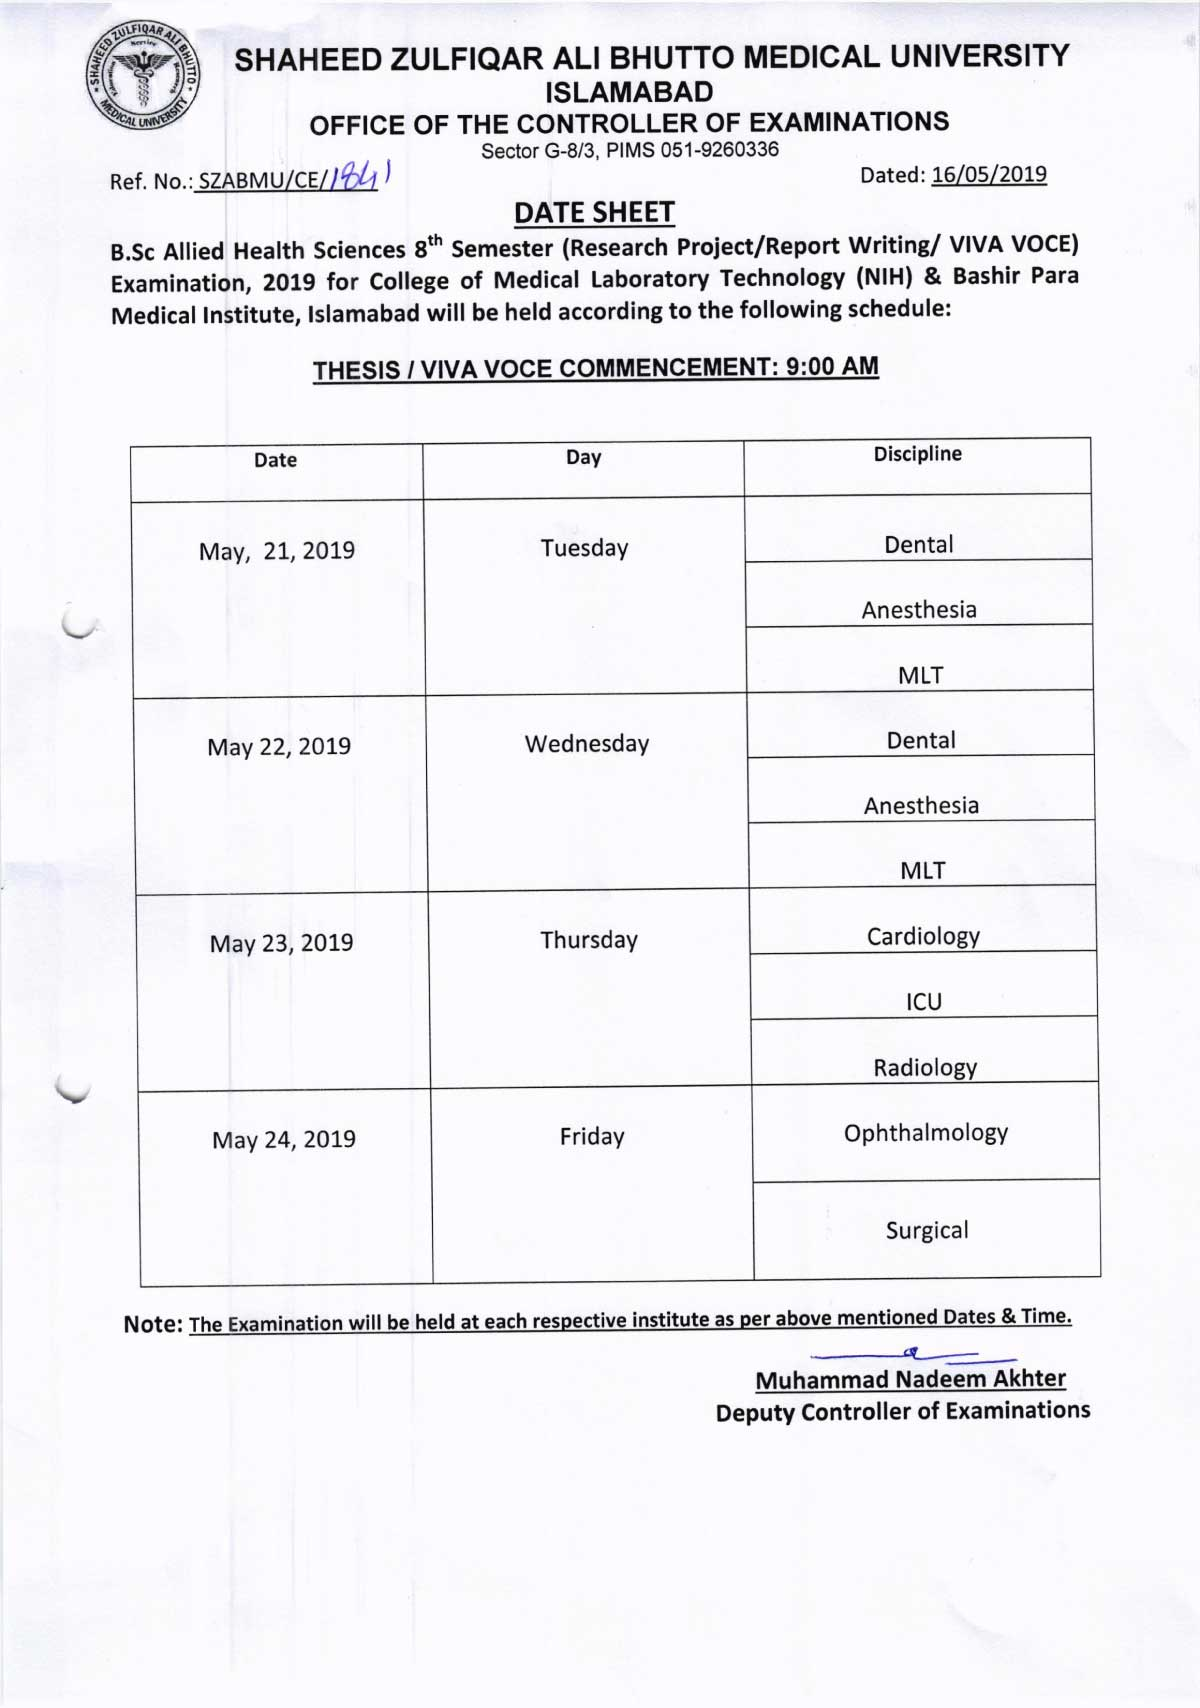 Date Sheet - Thesis / VIVA VOCE Allied Health Sciences (AHS) 8th Semester Final Examinations 2019